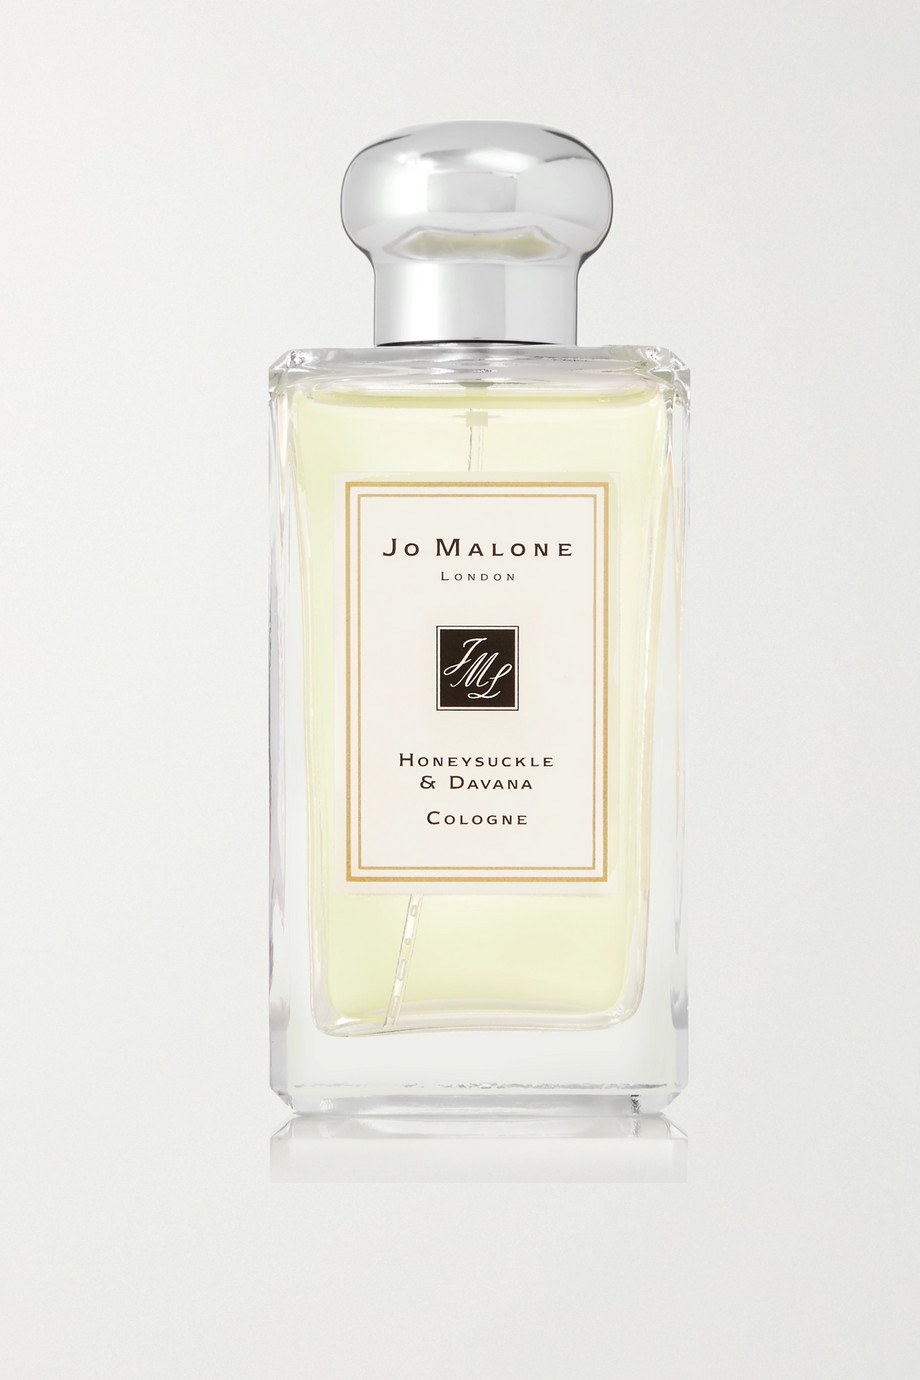 Jo Malone London Honeysuckle & Davana Cologne, 100ml